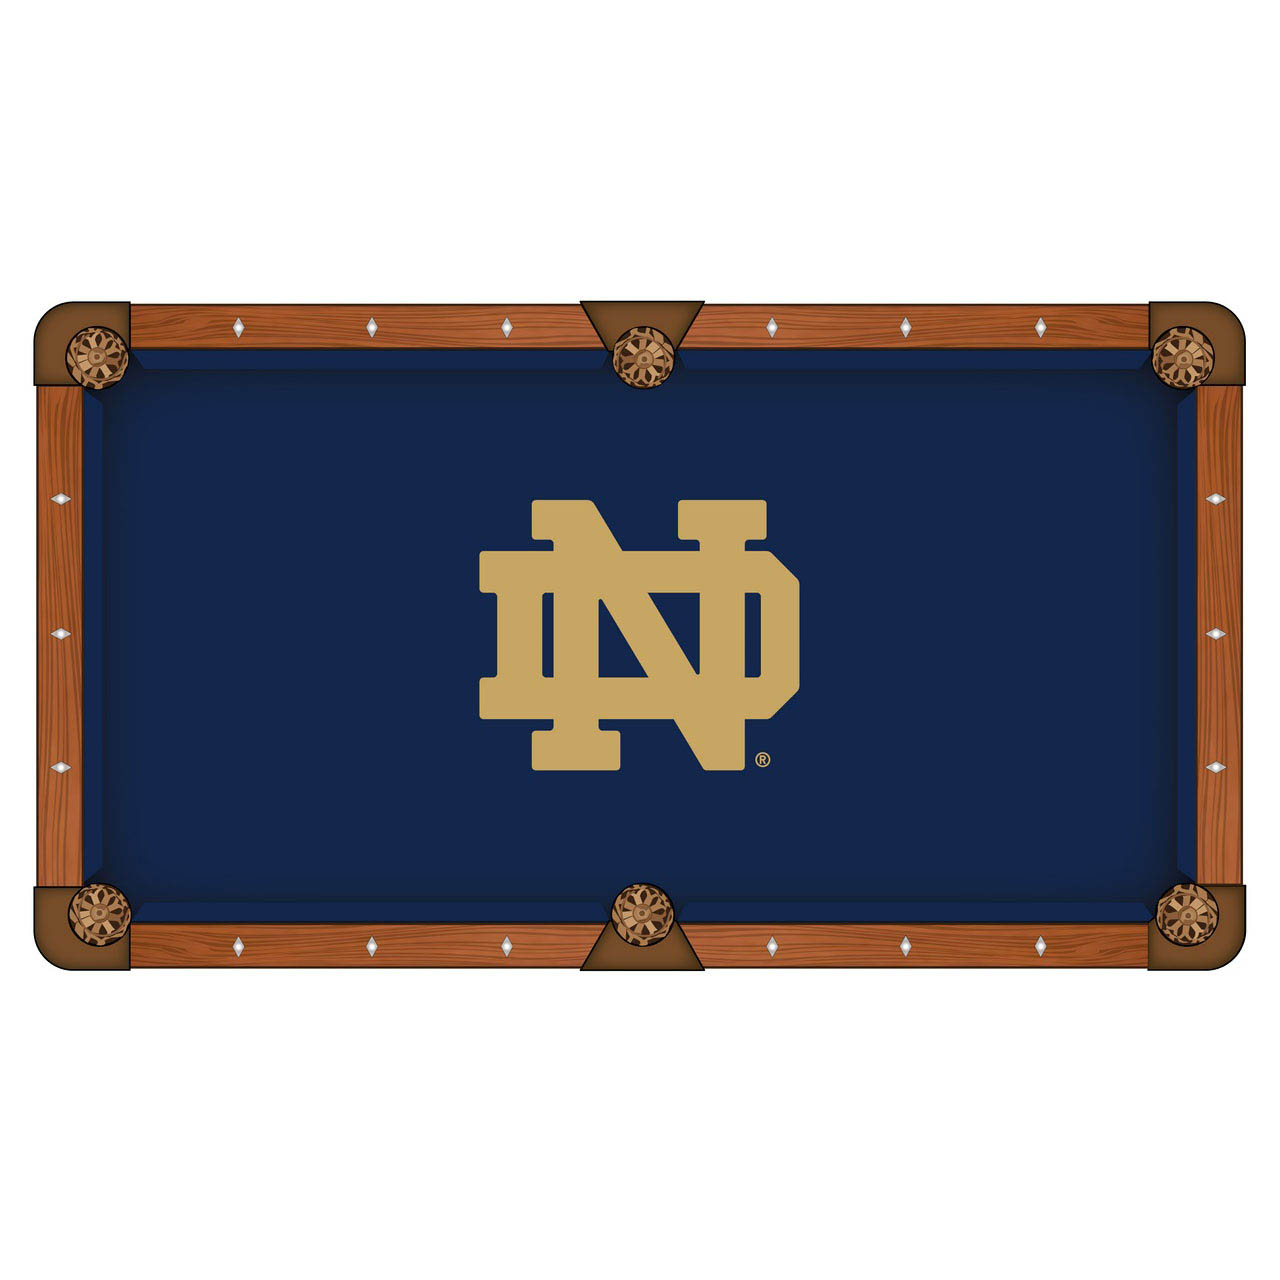 Remarkable Notre Dame Pool Table Cloth Product Photo